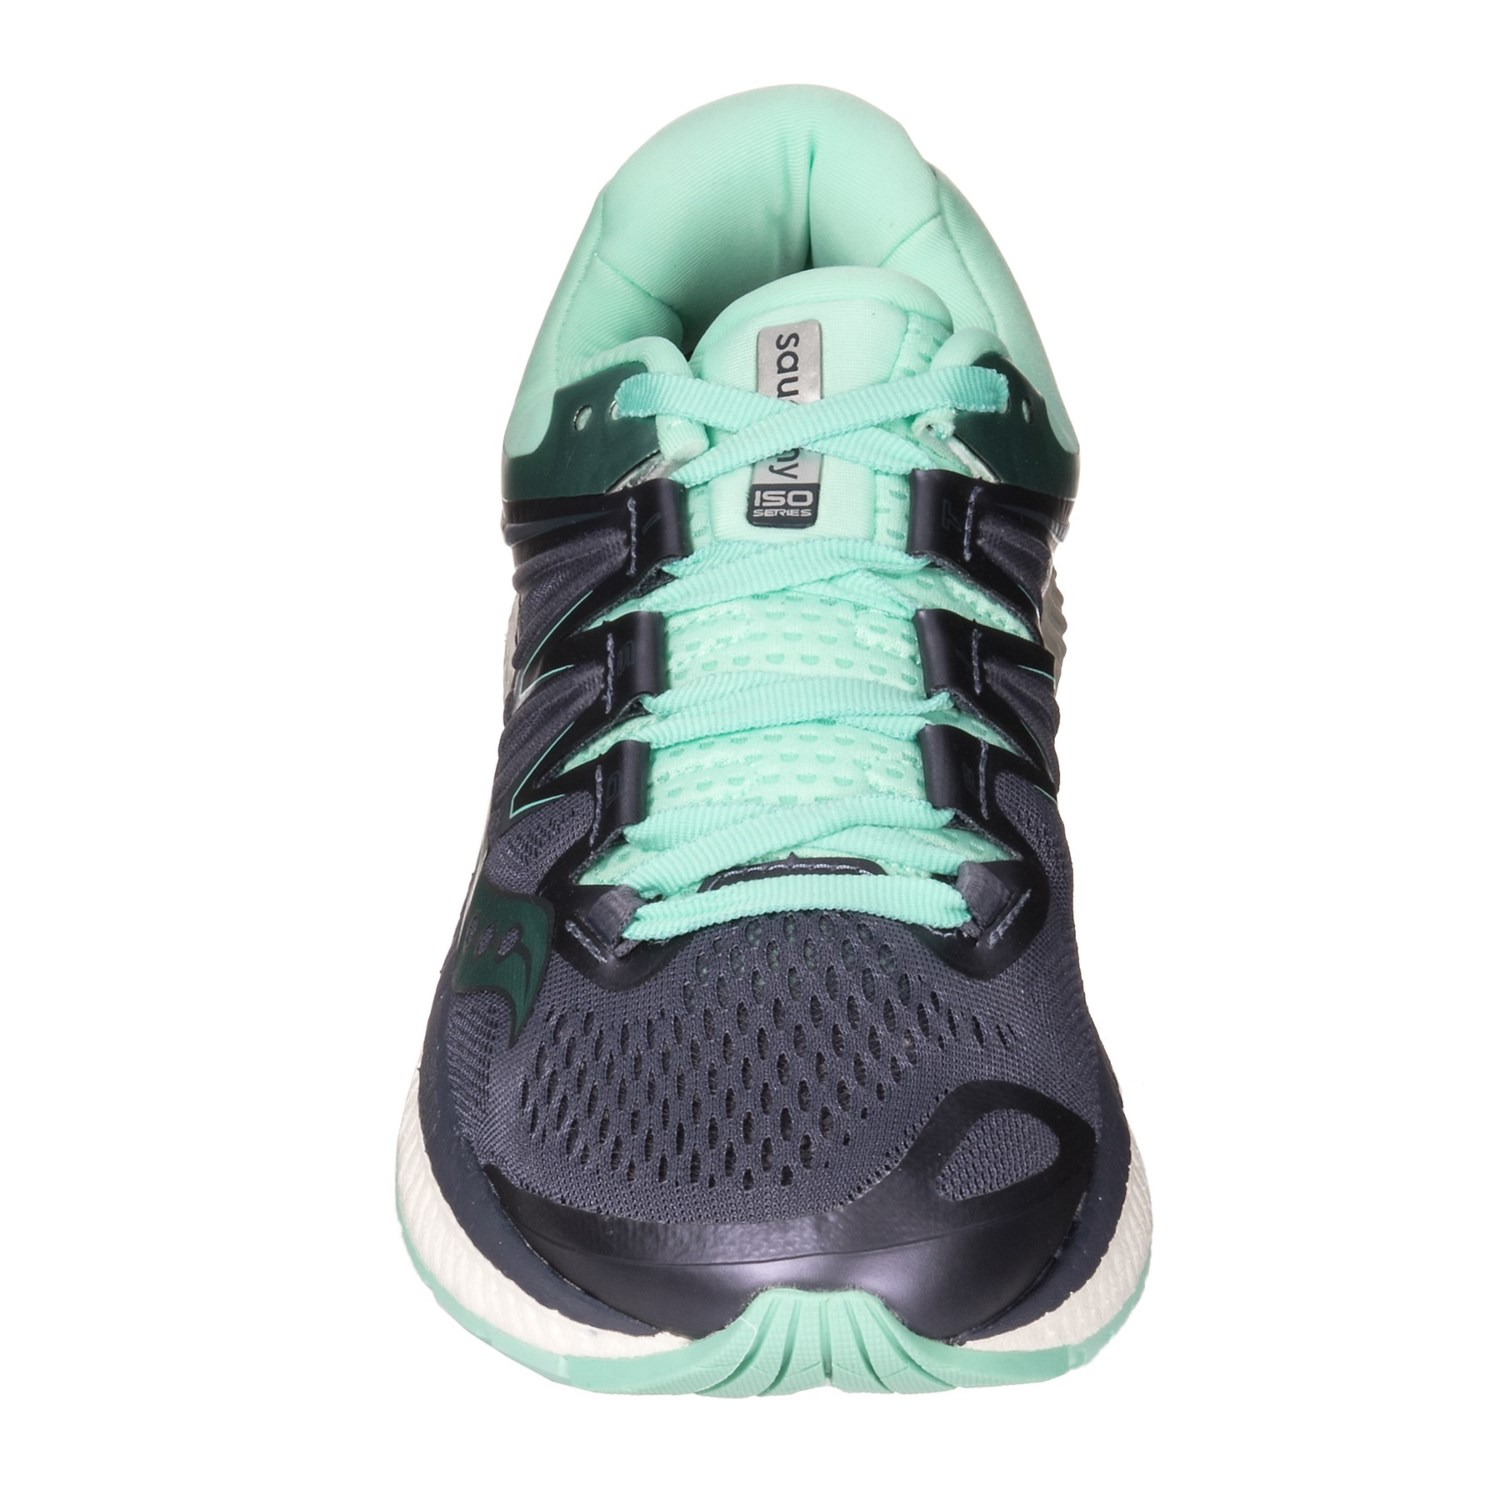 fde506f0fe8 Saucony Hurricane ISO 4 Running Shoes (For Women) - Save 39%